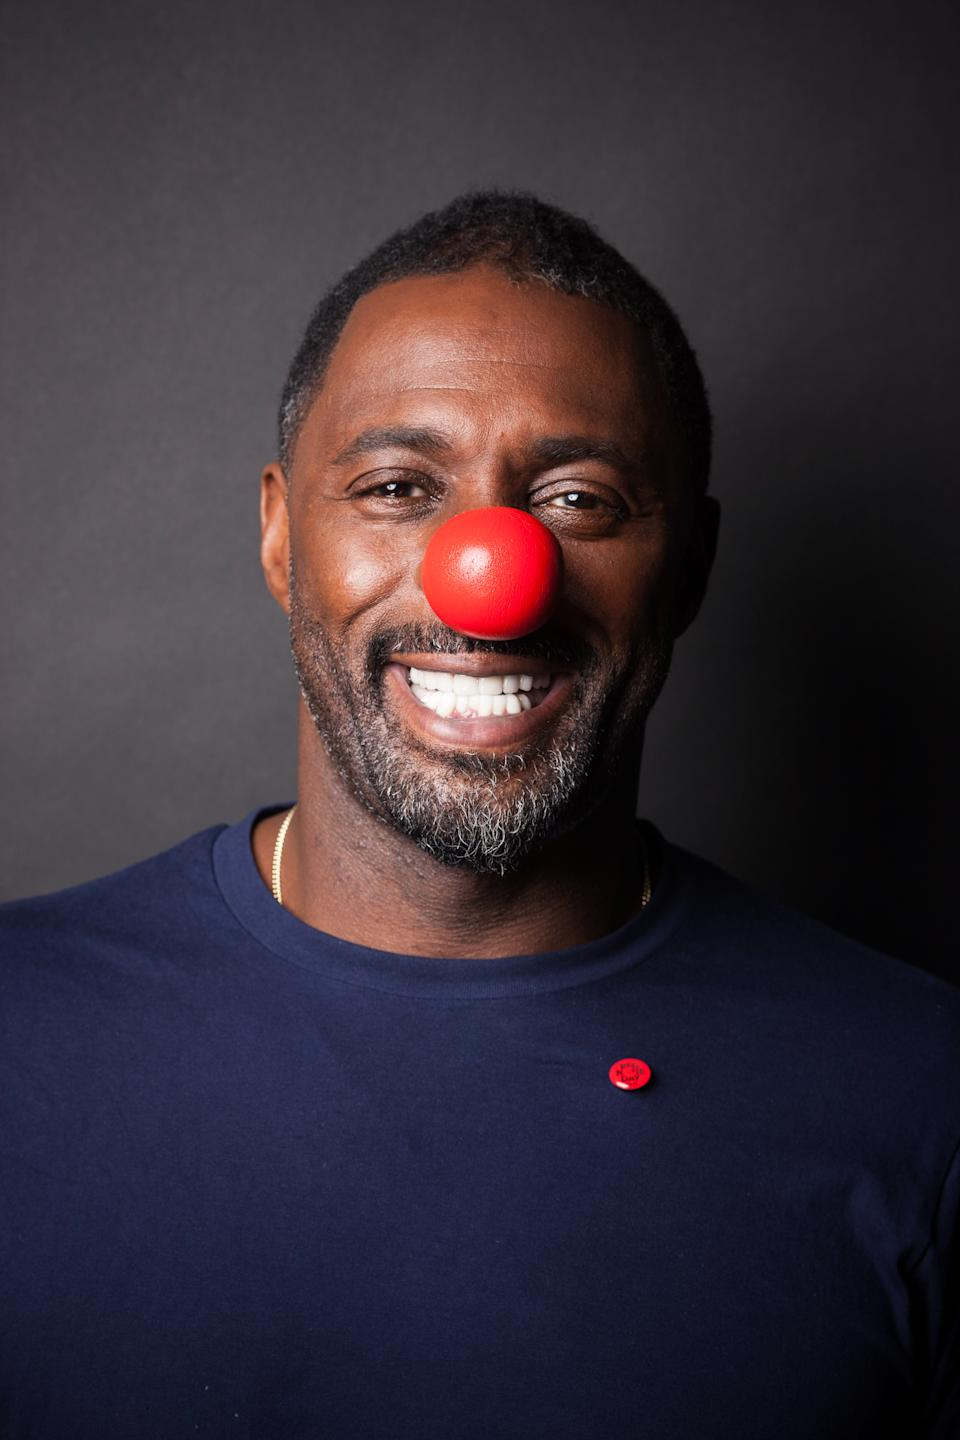 Actor Idris Elba took part in Red Nose Day in 2015 (Trevor Leighton/Comic Relief/Getty Images)